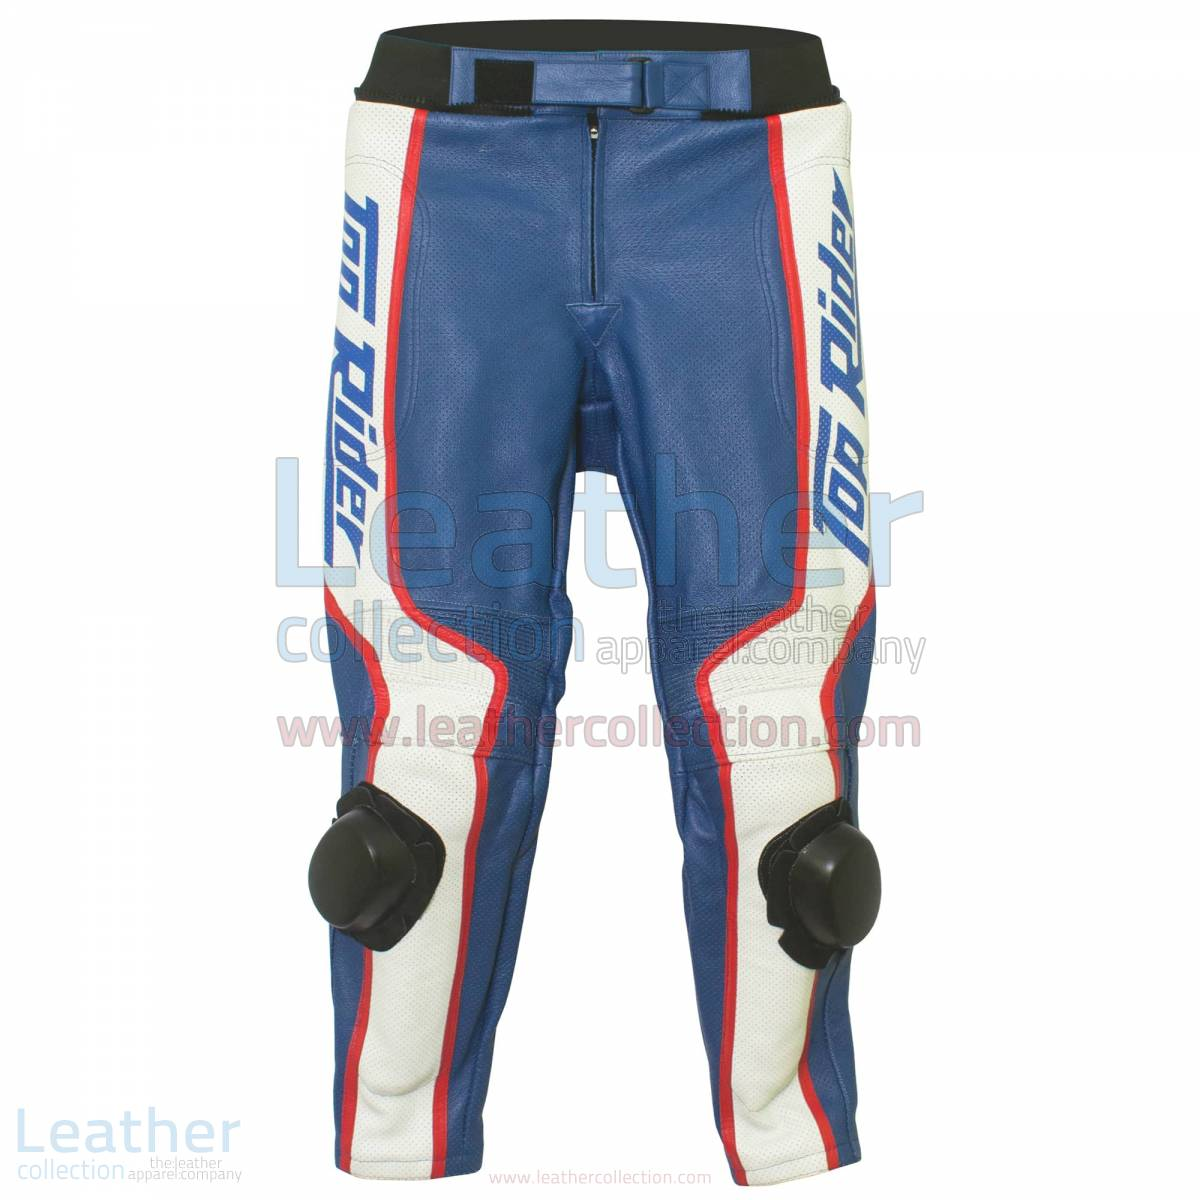 Freddie Spencer Honda Daytona 1985 Motorcycle Racing Pant – Honda Pant